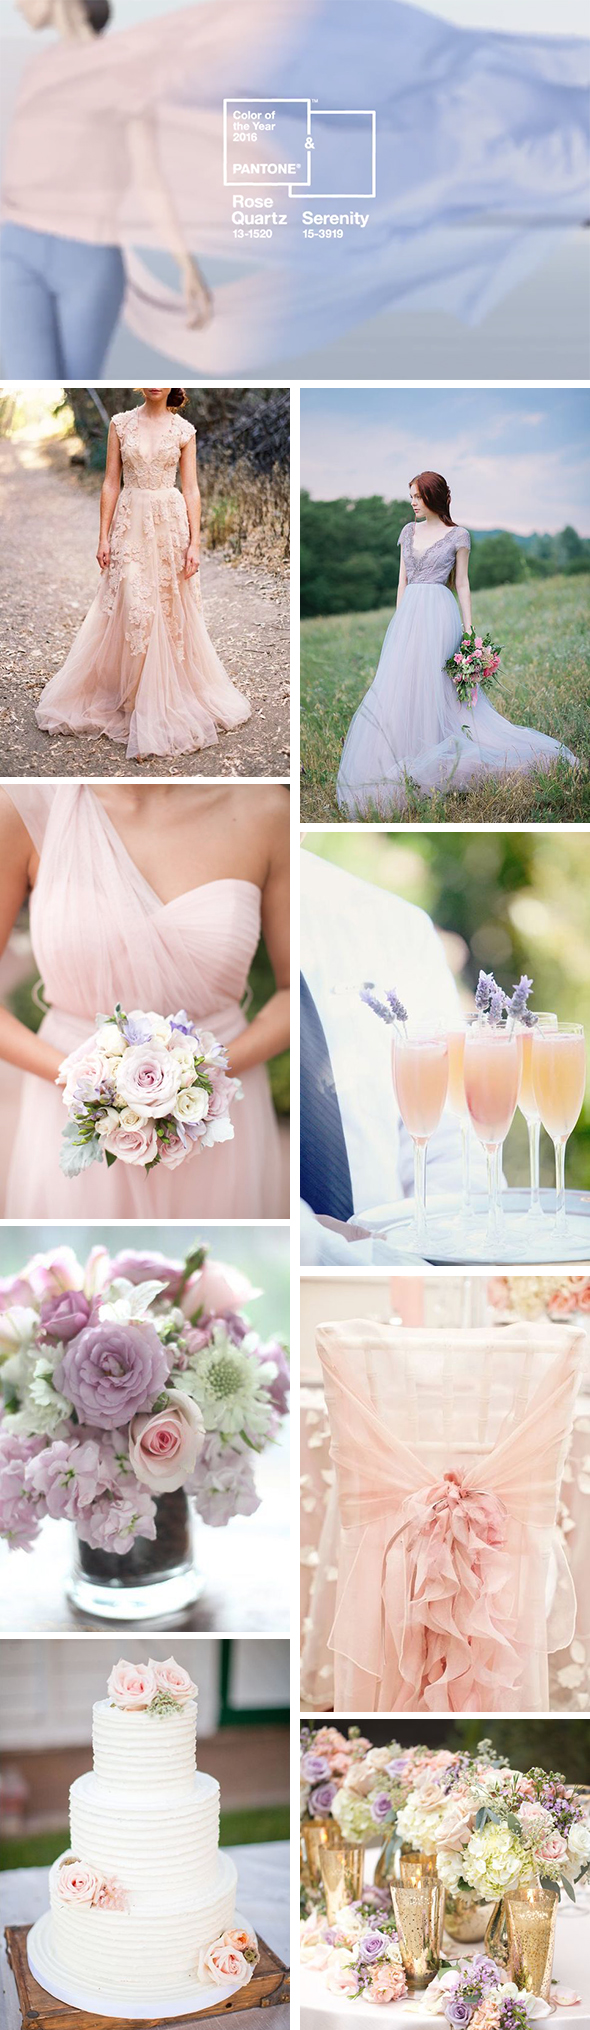 pantone 2016 wedding colors